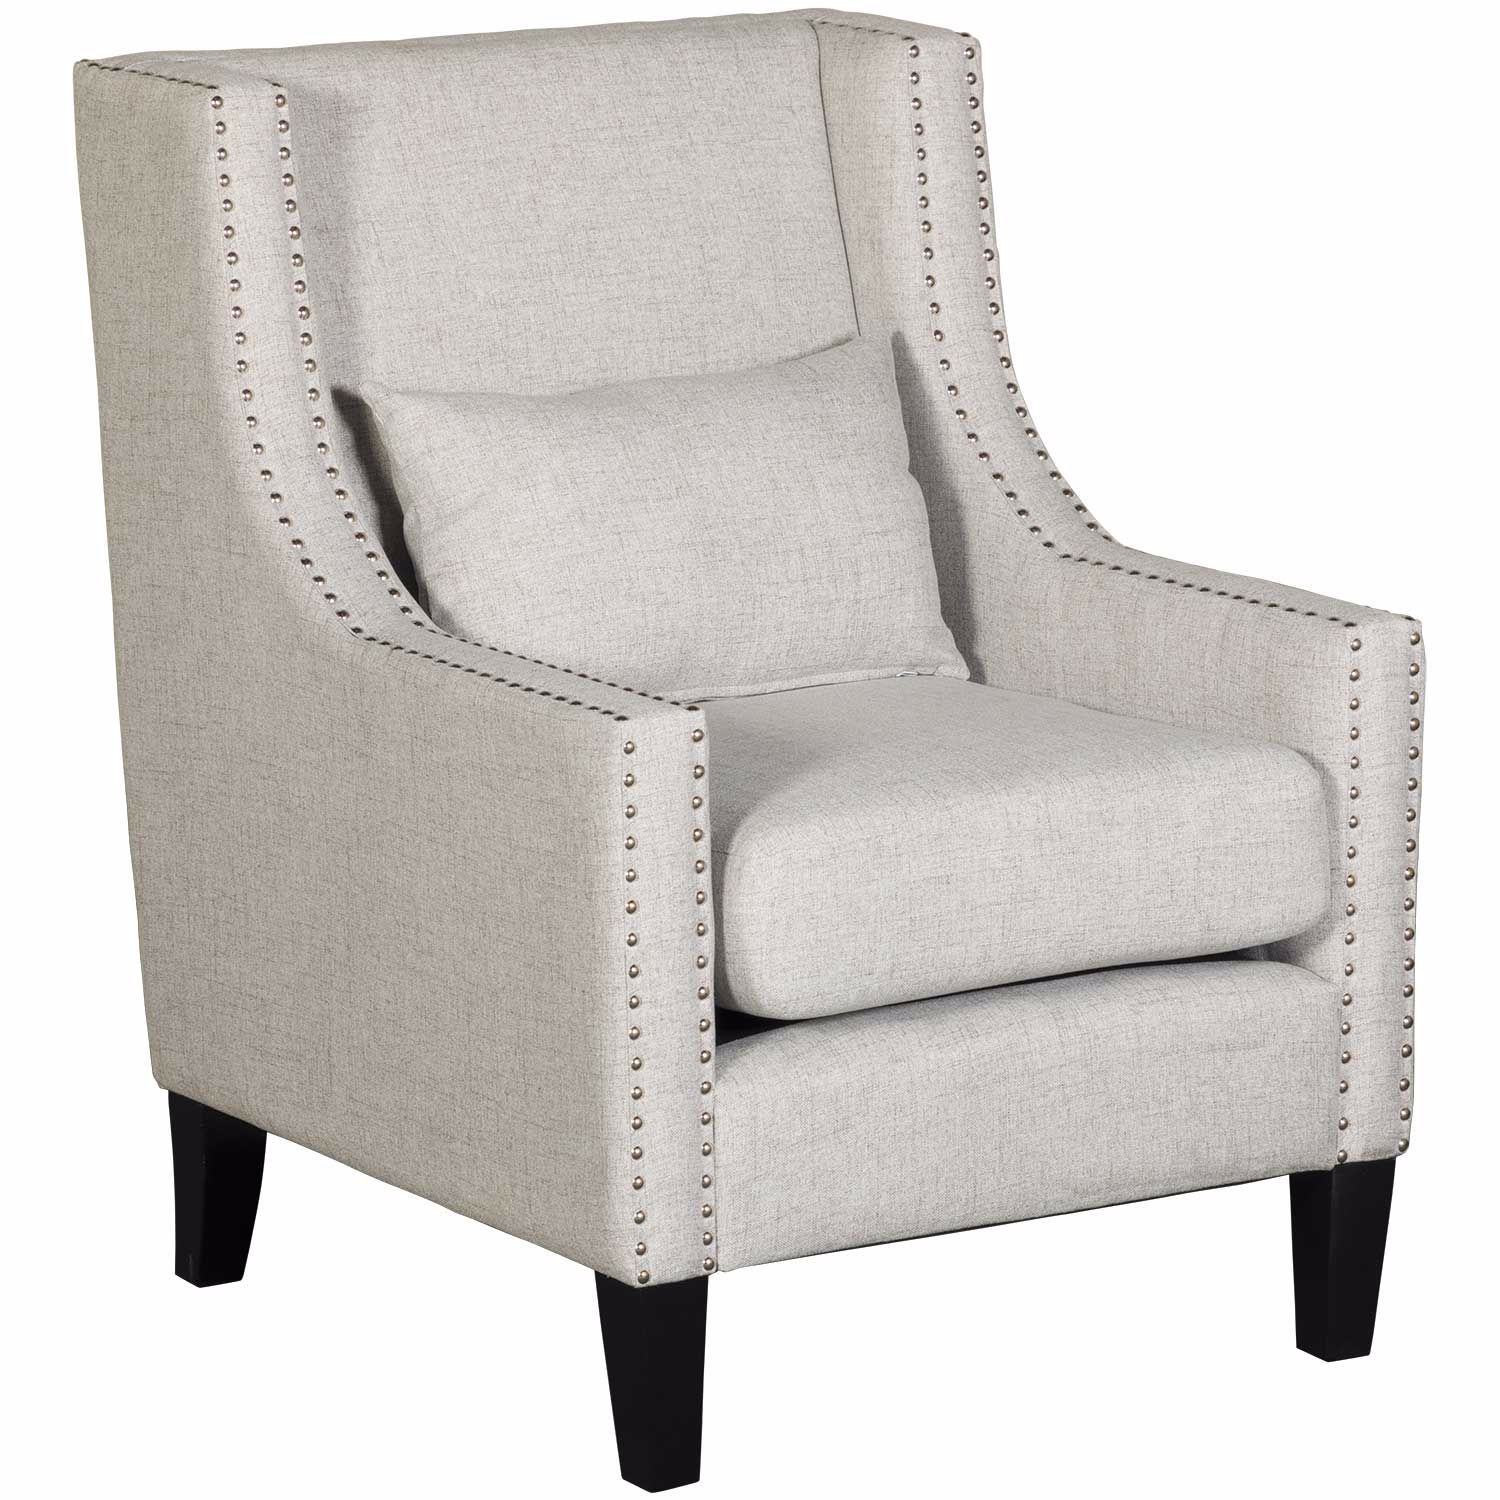 Picture of Whittier Gray Accent Chair